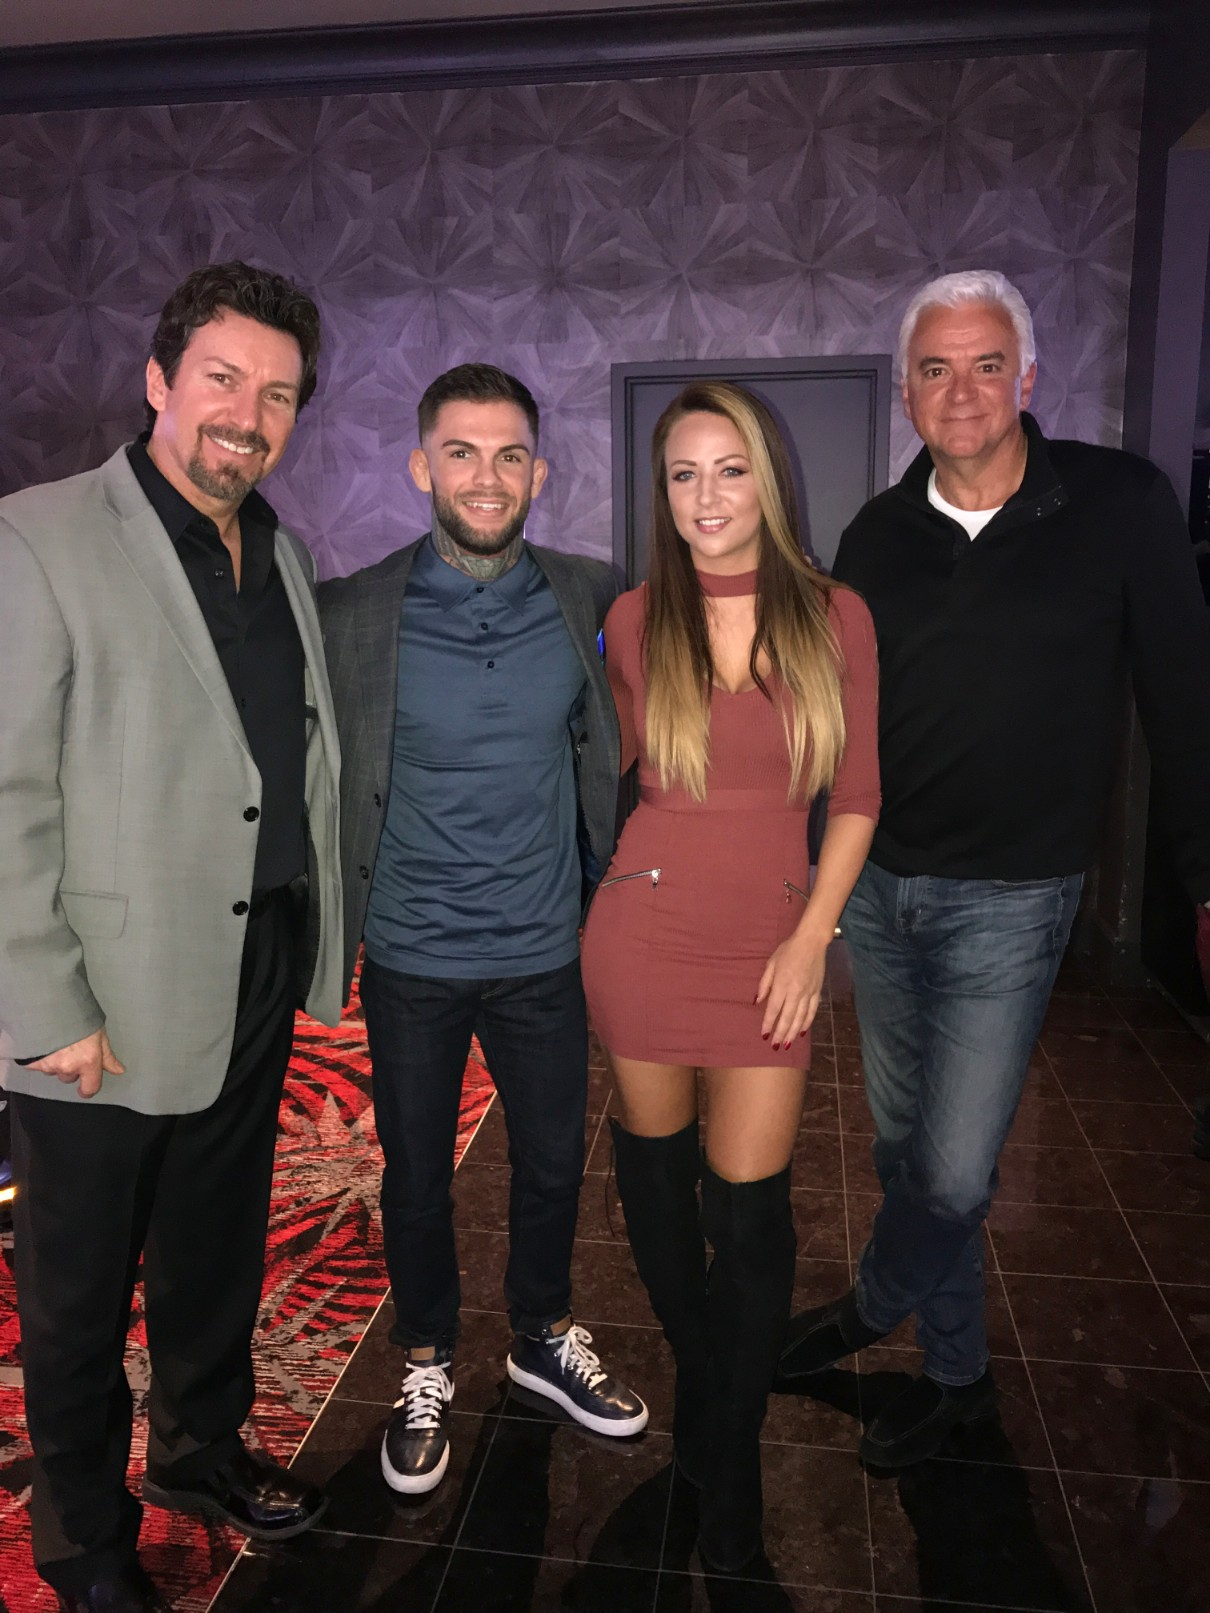 The D Executive Richard Wilk with UFC Champ Cody Garbrandt, WWE Emma and actor John O'Hurley at the D Casino Hotel Las Vegas